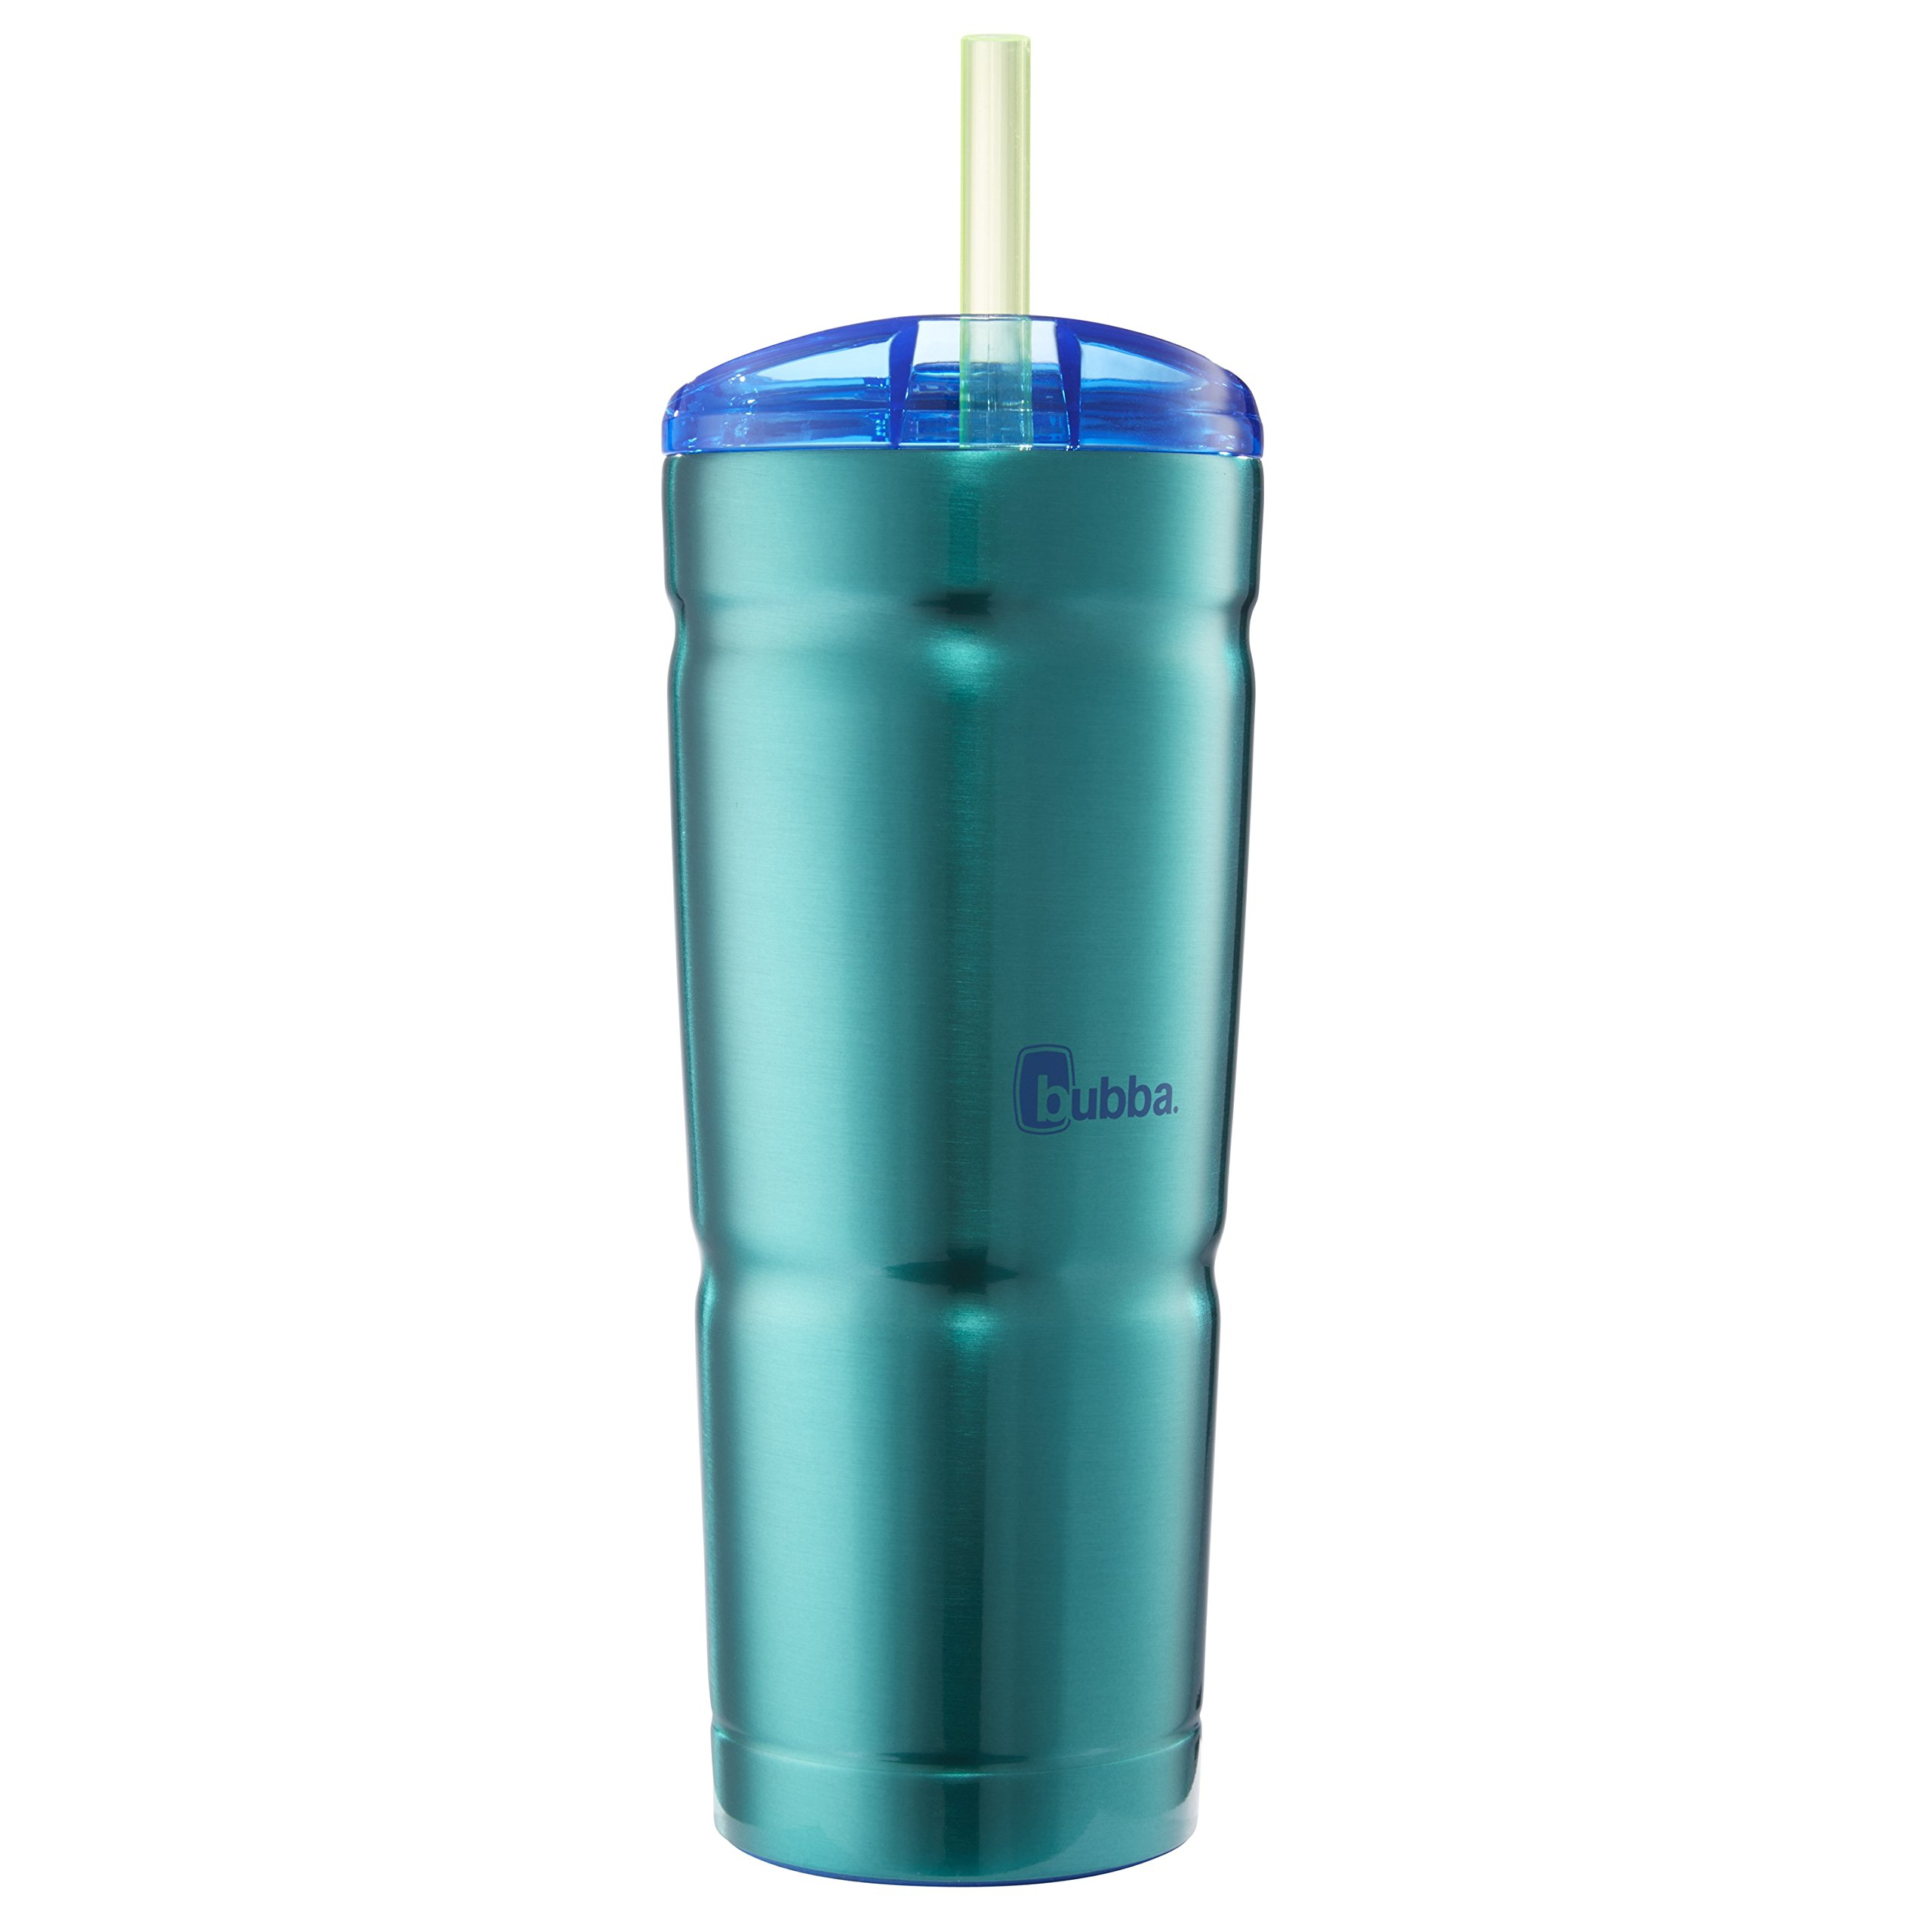 Bubba Envy S Vacuum-Insulated Stainless Steel Straw Tumbler, 24 oz. Island Teal